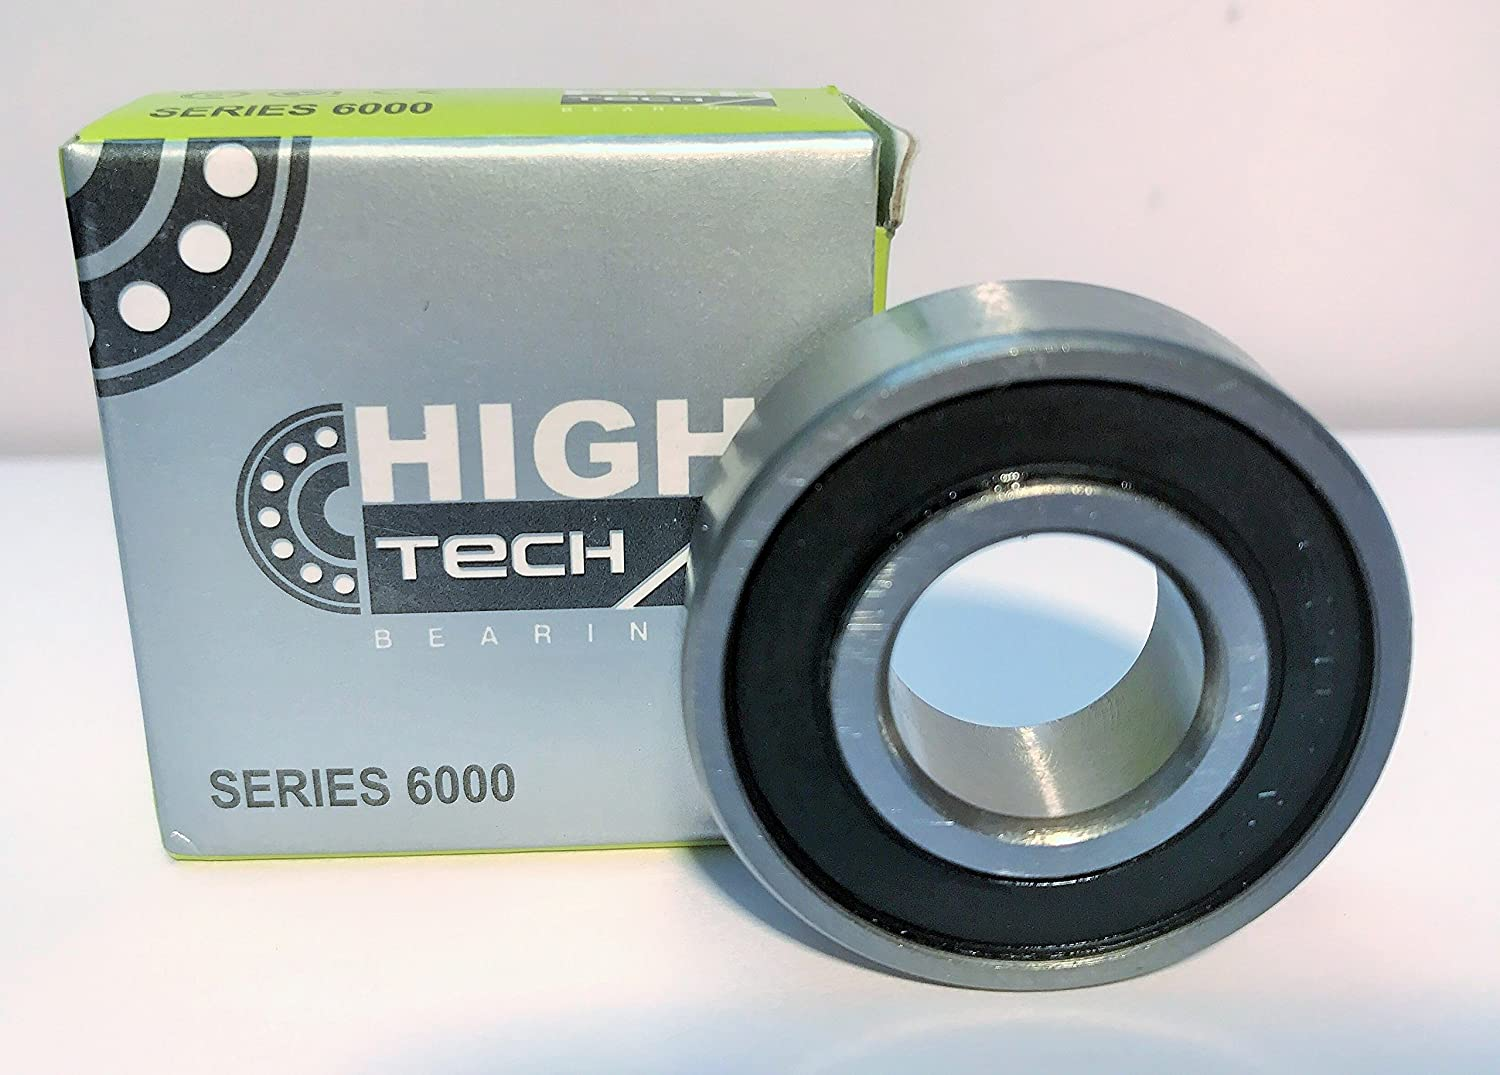 6202-2RS/C3 - Deep Groove Ball Bearings, High Tech Bearings, 15x35x11 mm, C3 Clearance, Metric, Steel Cage,Rubber Double Sealed, Pre Lubricated